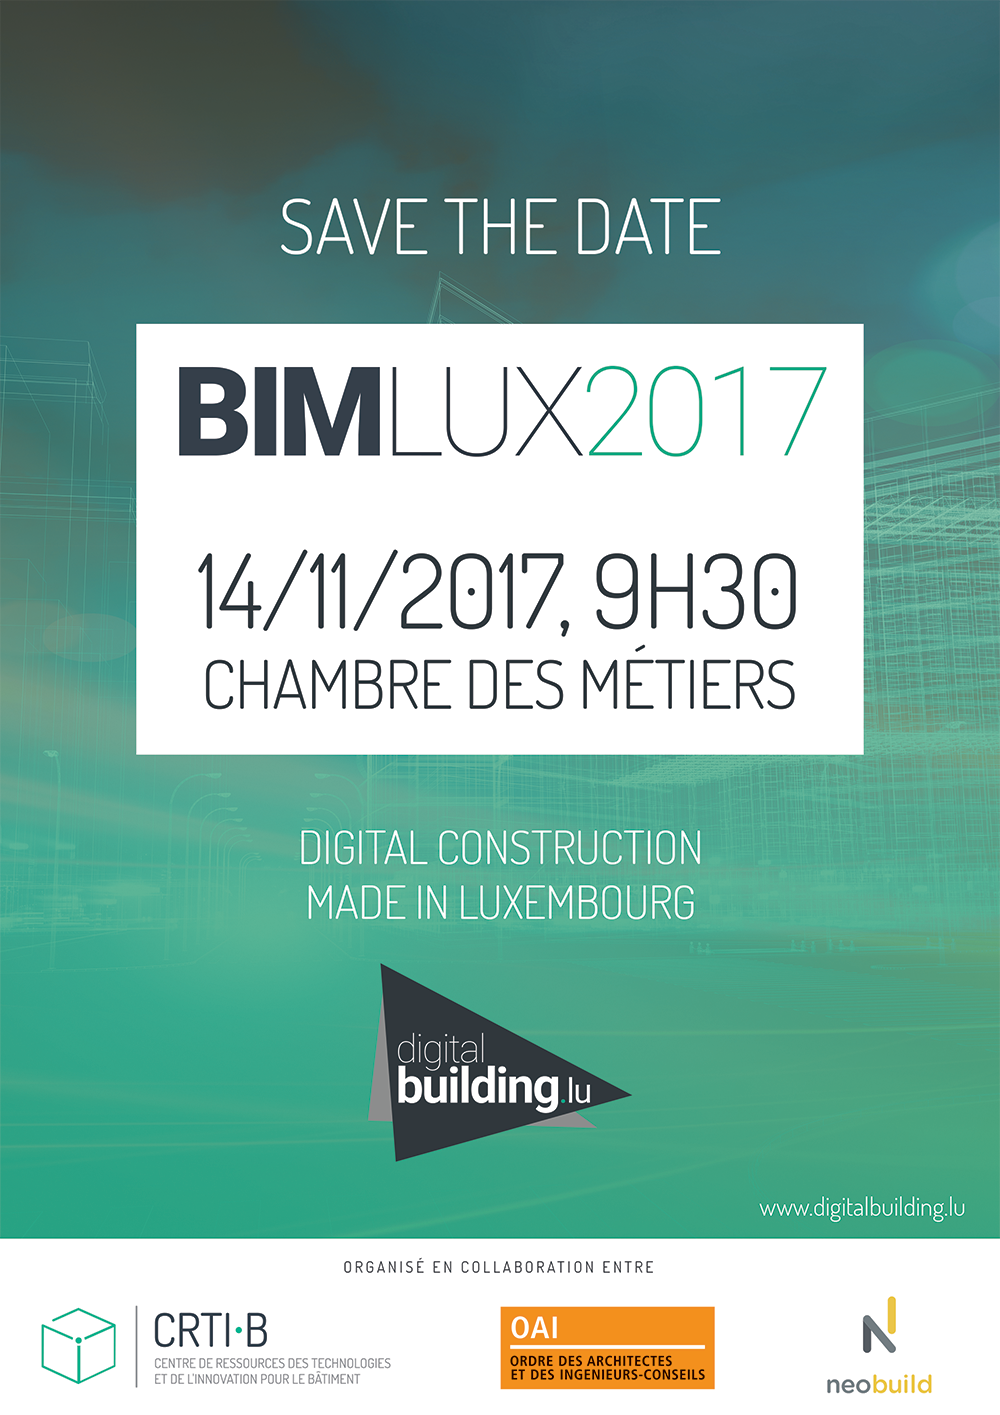 2017-09-06_save-the-date-bimlux17_screen_2_.png